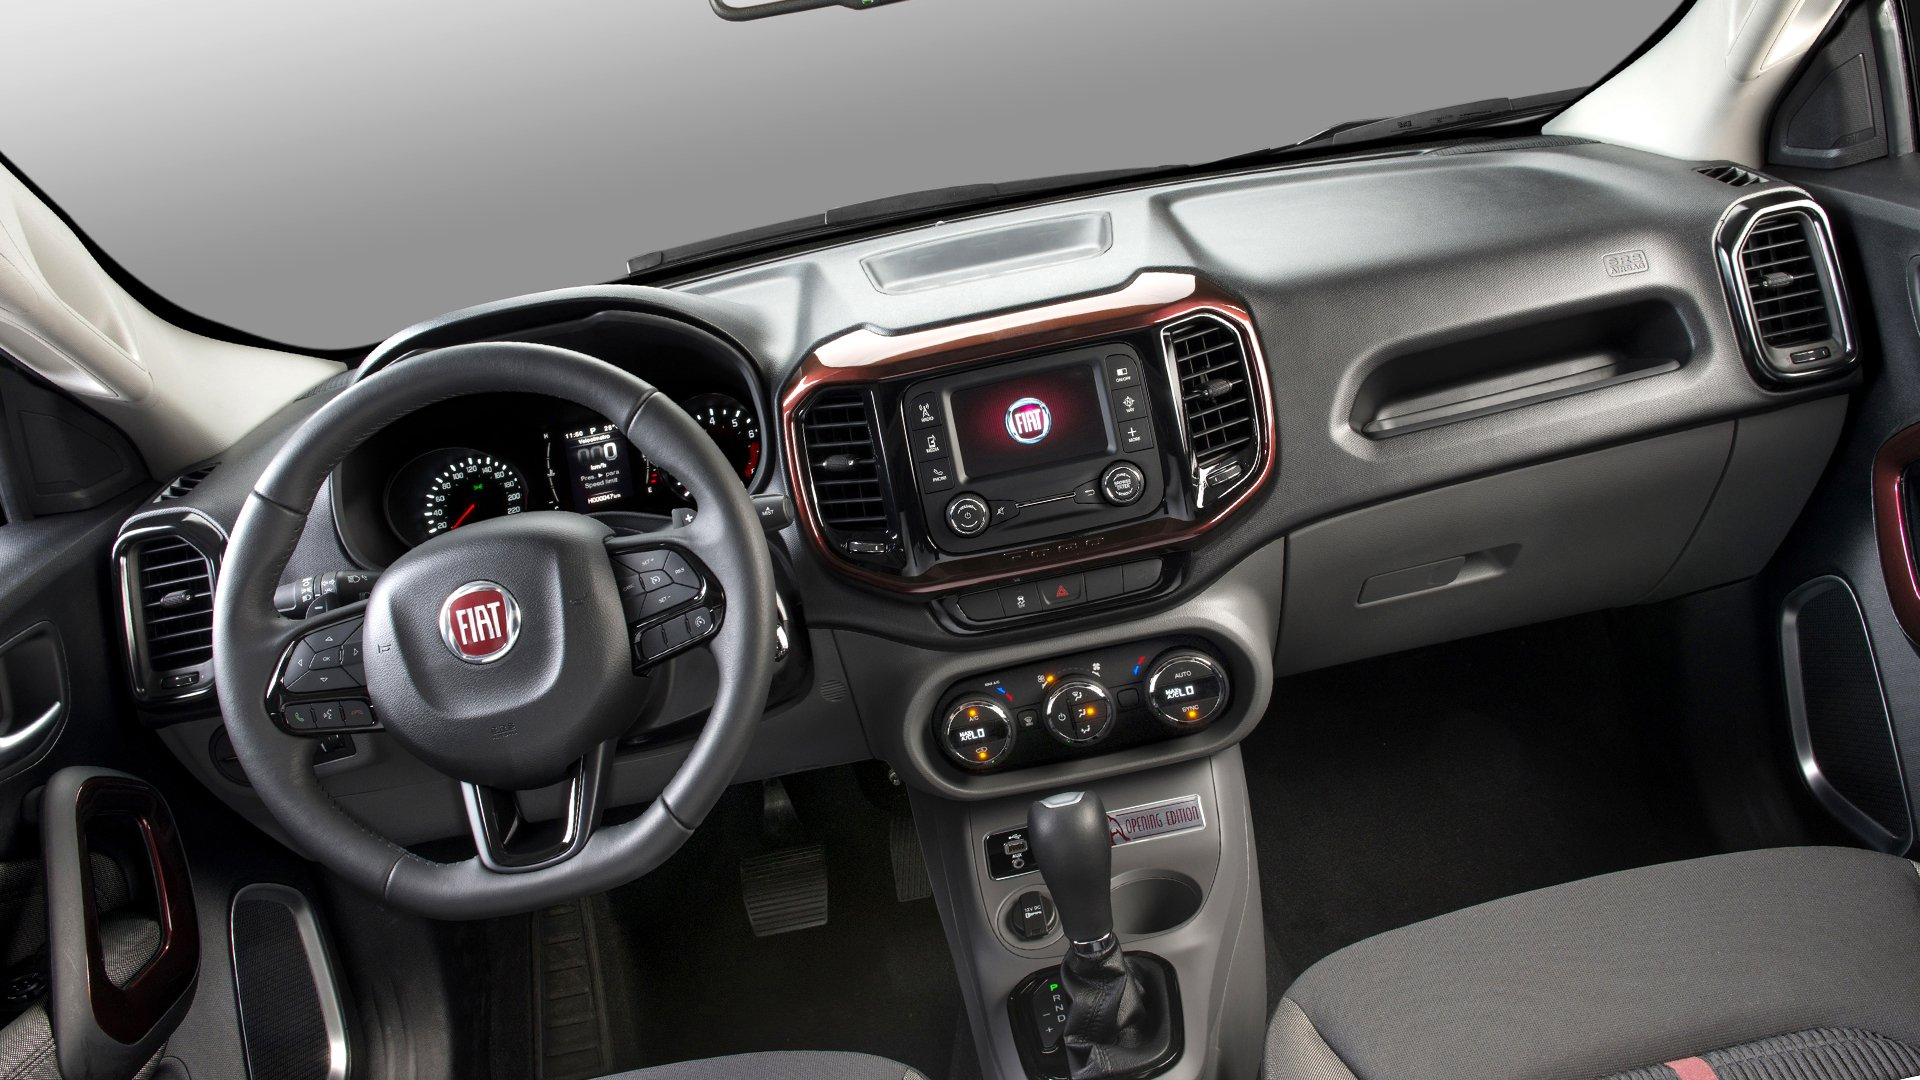 New 2019 Fiat Toro Interior Design